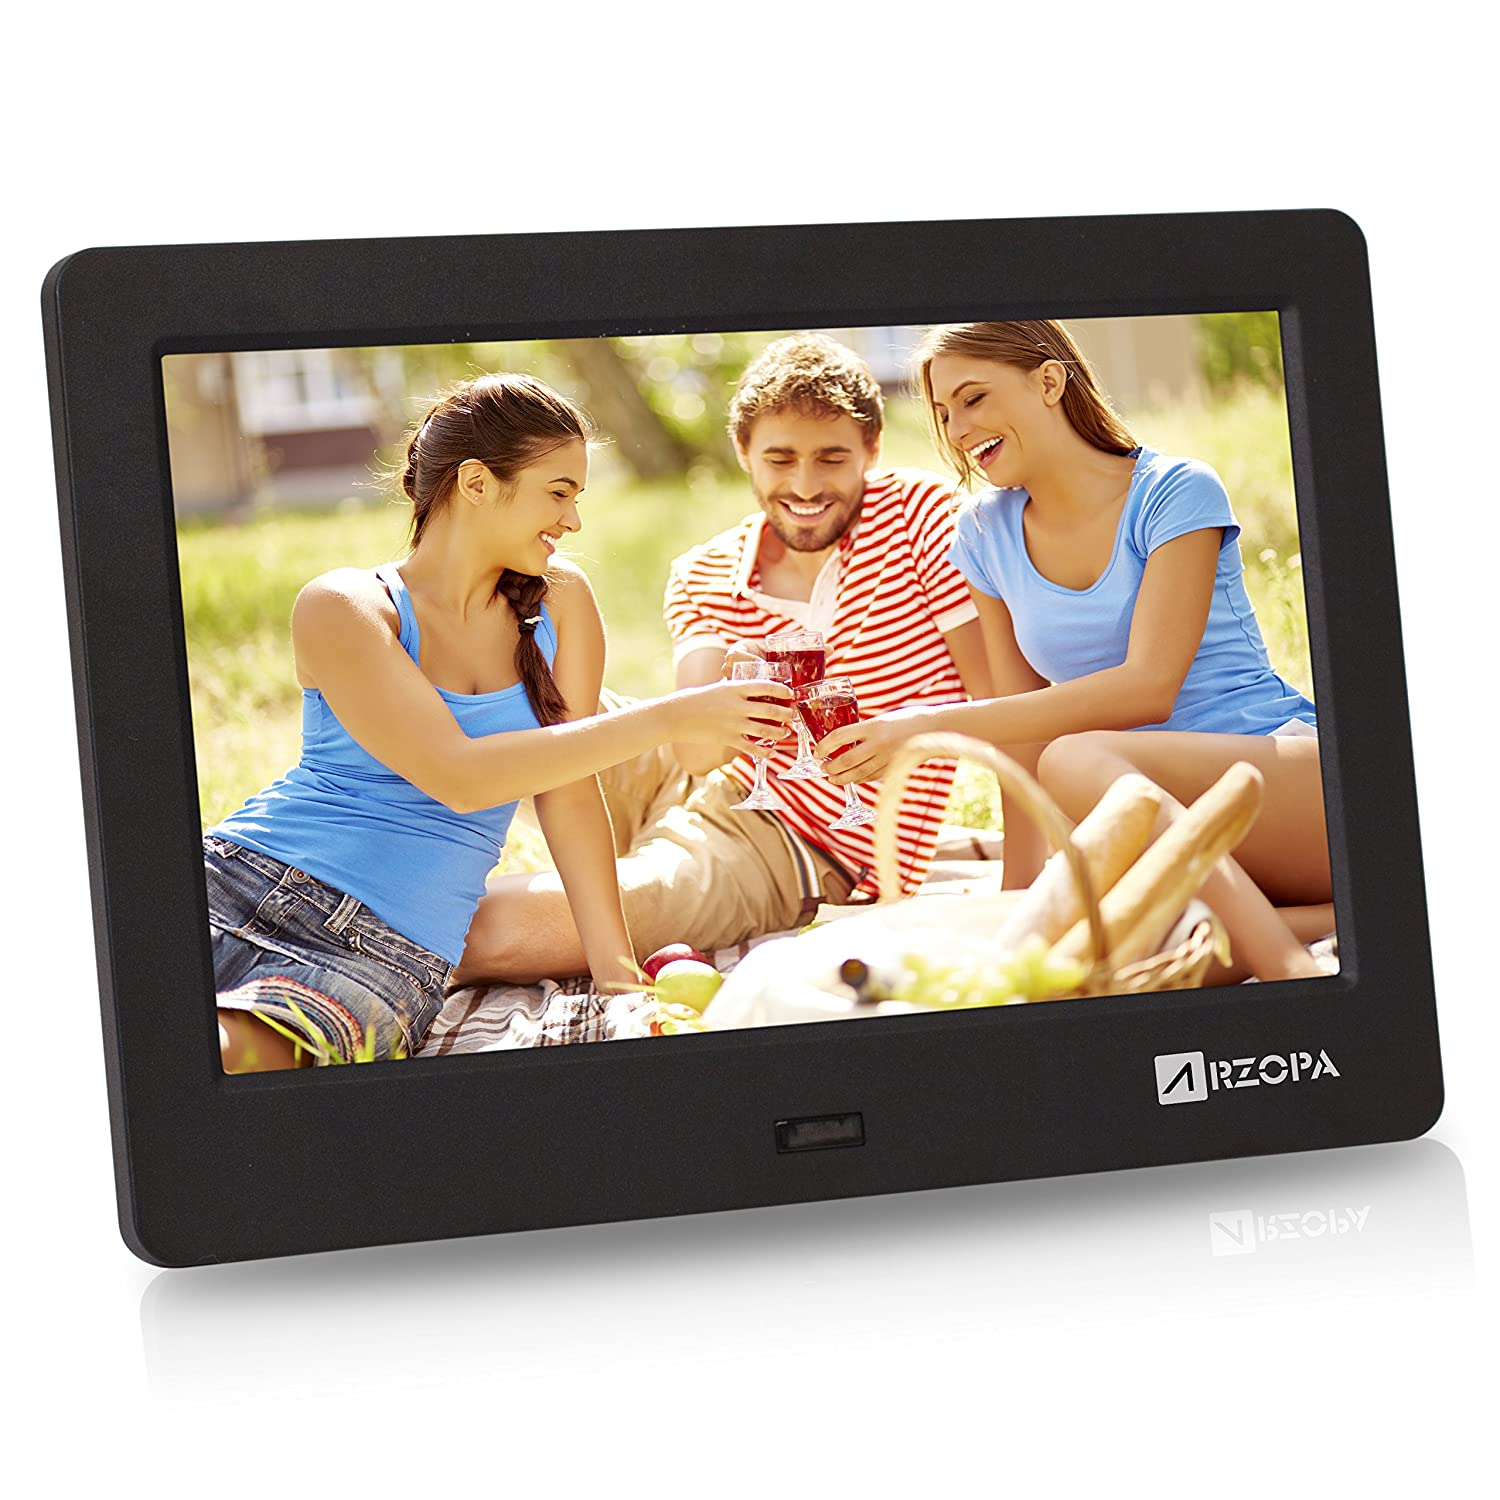 Amazon digital picture frames electronics arzopa 7 inch ips widescreen digital photo frame hd 1024x600169 jeuxipadfo Image collections